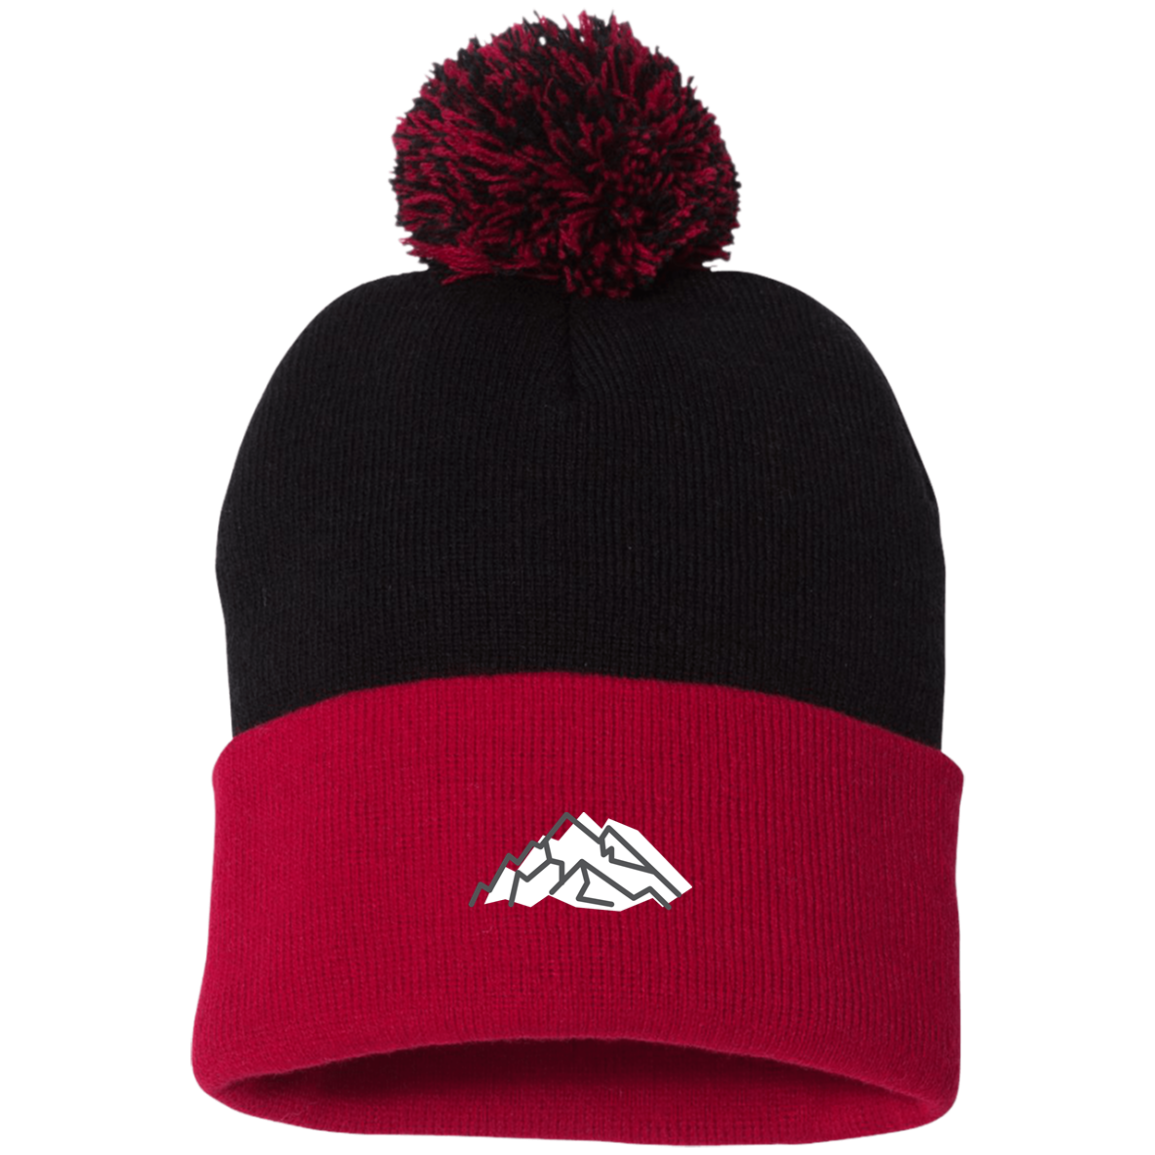 Mountain Embroidery Pom Pom Knit Cap - Powderaddicts